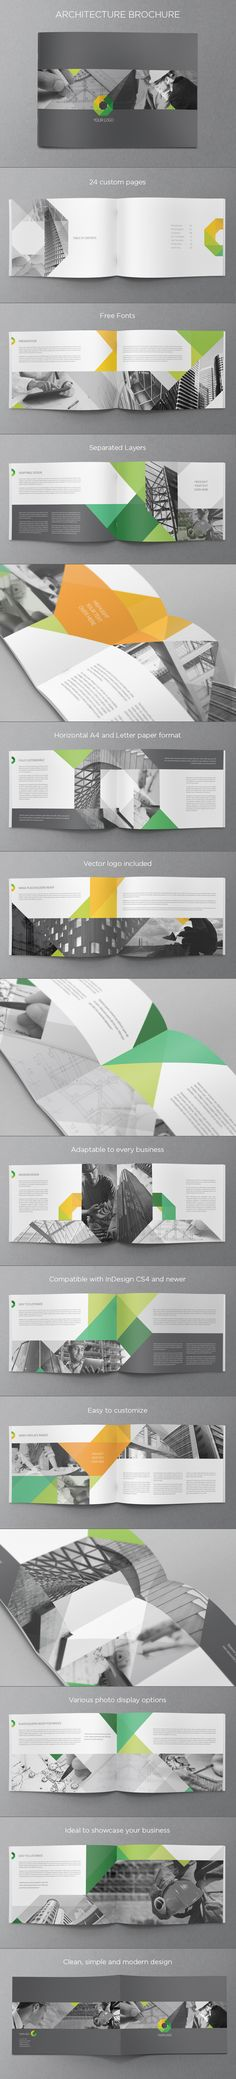 Buy Modern Architecture Brochure by AbraDesign on GraphicRiver. ARCHITECTURE BROCHURE This brochure is an ideal way to showcase your business. It is a horizontal design, available i. Web Design, Layout Design, Design Typo, Graphic Design Layouts, Typography Design, Creative Design, Design Cars, Brochure Indesign, Design Brochure